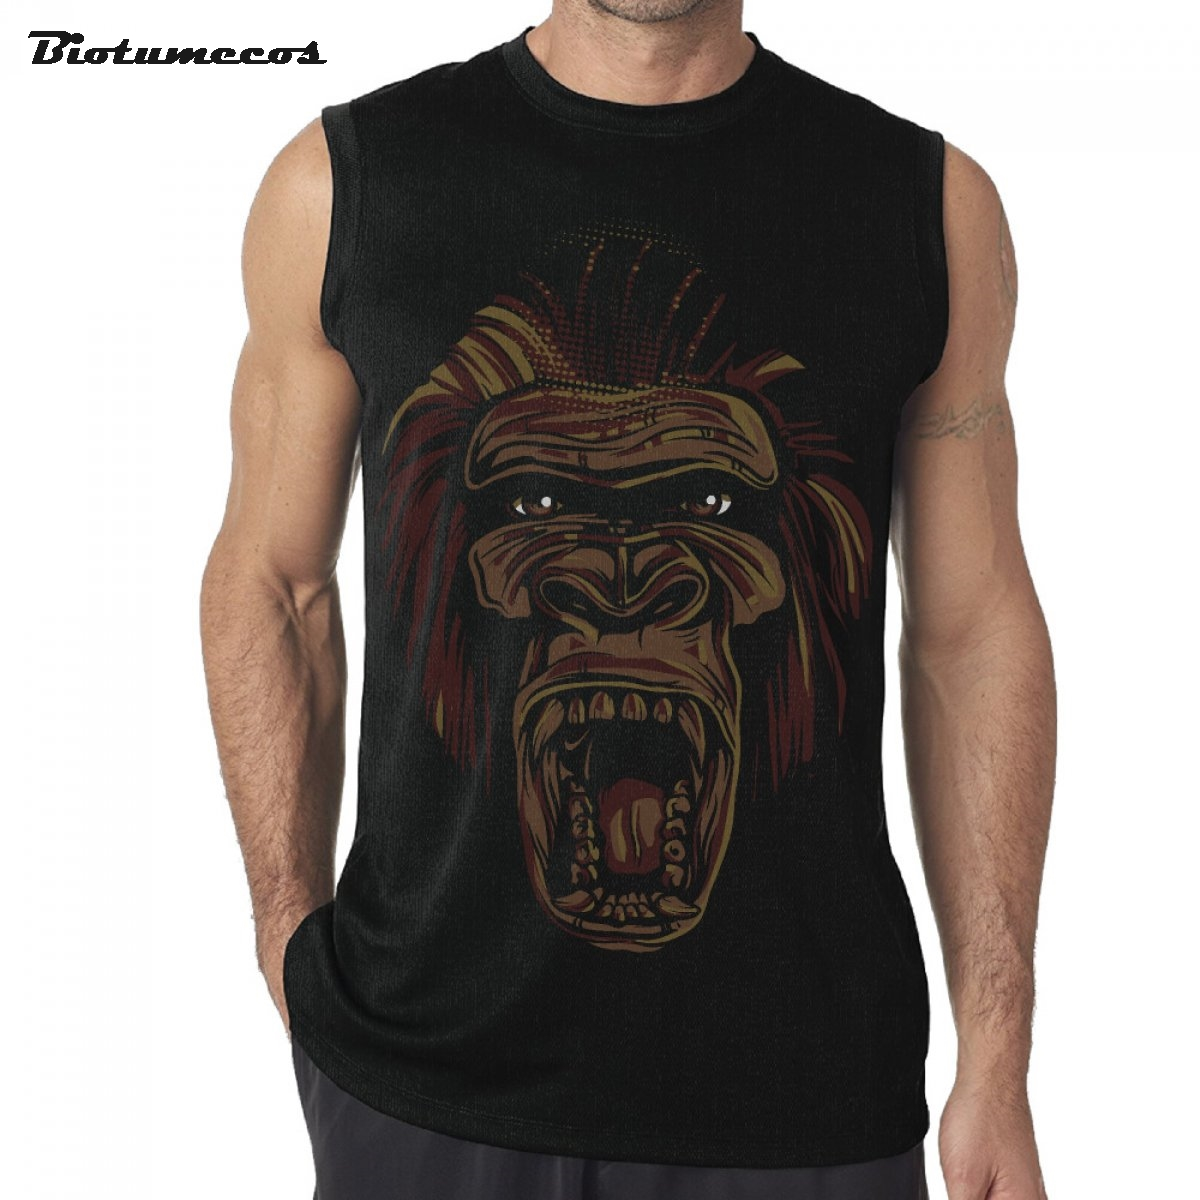 Men Tank Tops Fashion Brand Sleeveless T shirts Ape Man Gorilla Open Big Mouth Roar Printed Casual Summer Undershirts MWD033